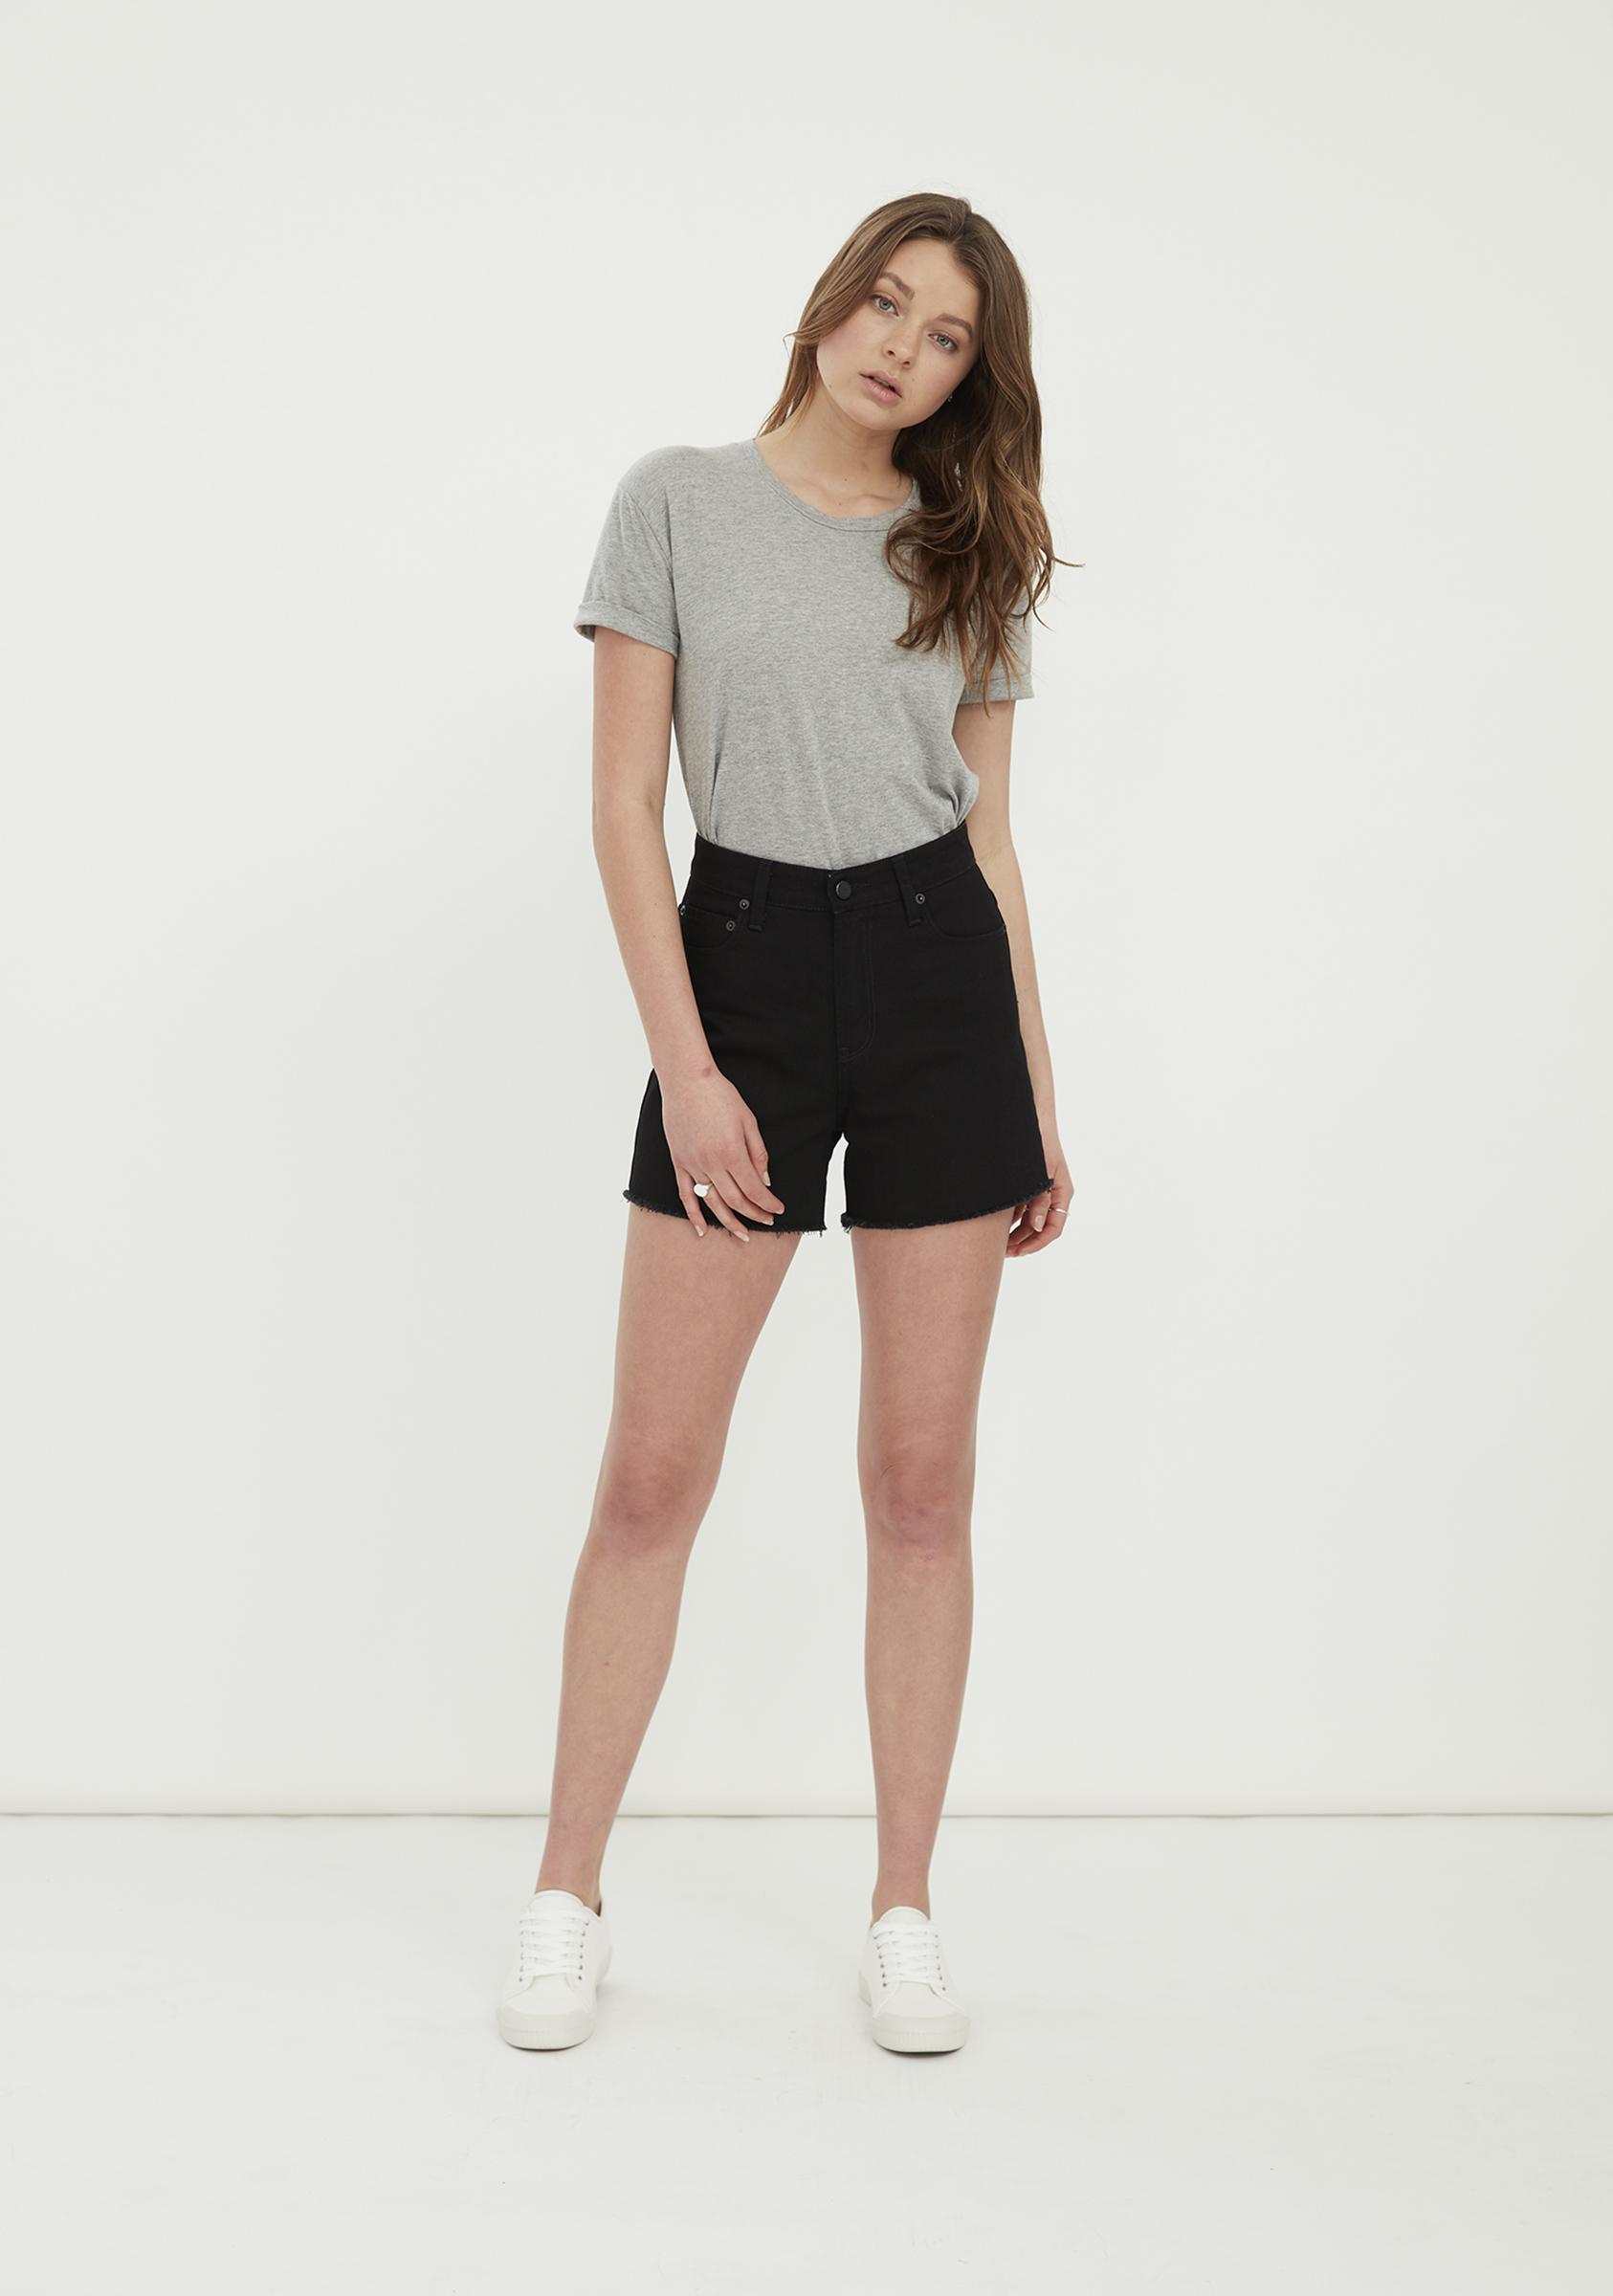 LUCY Short – Black